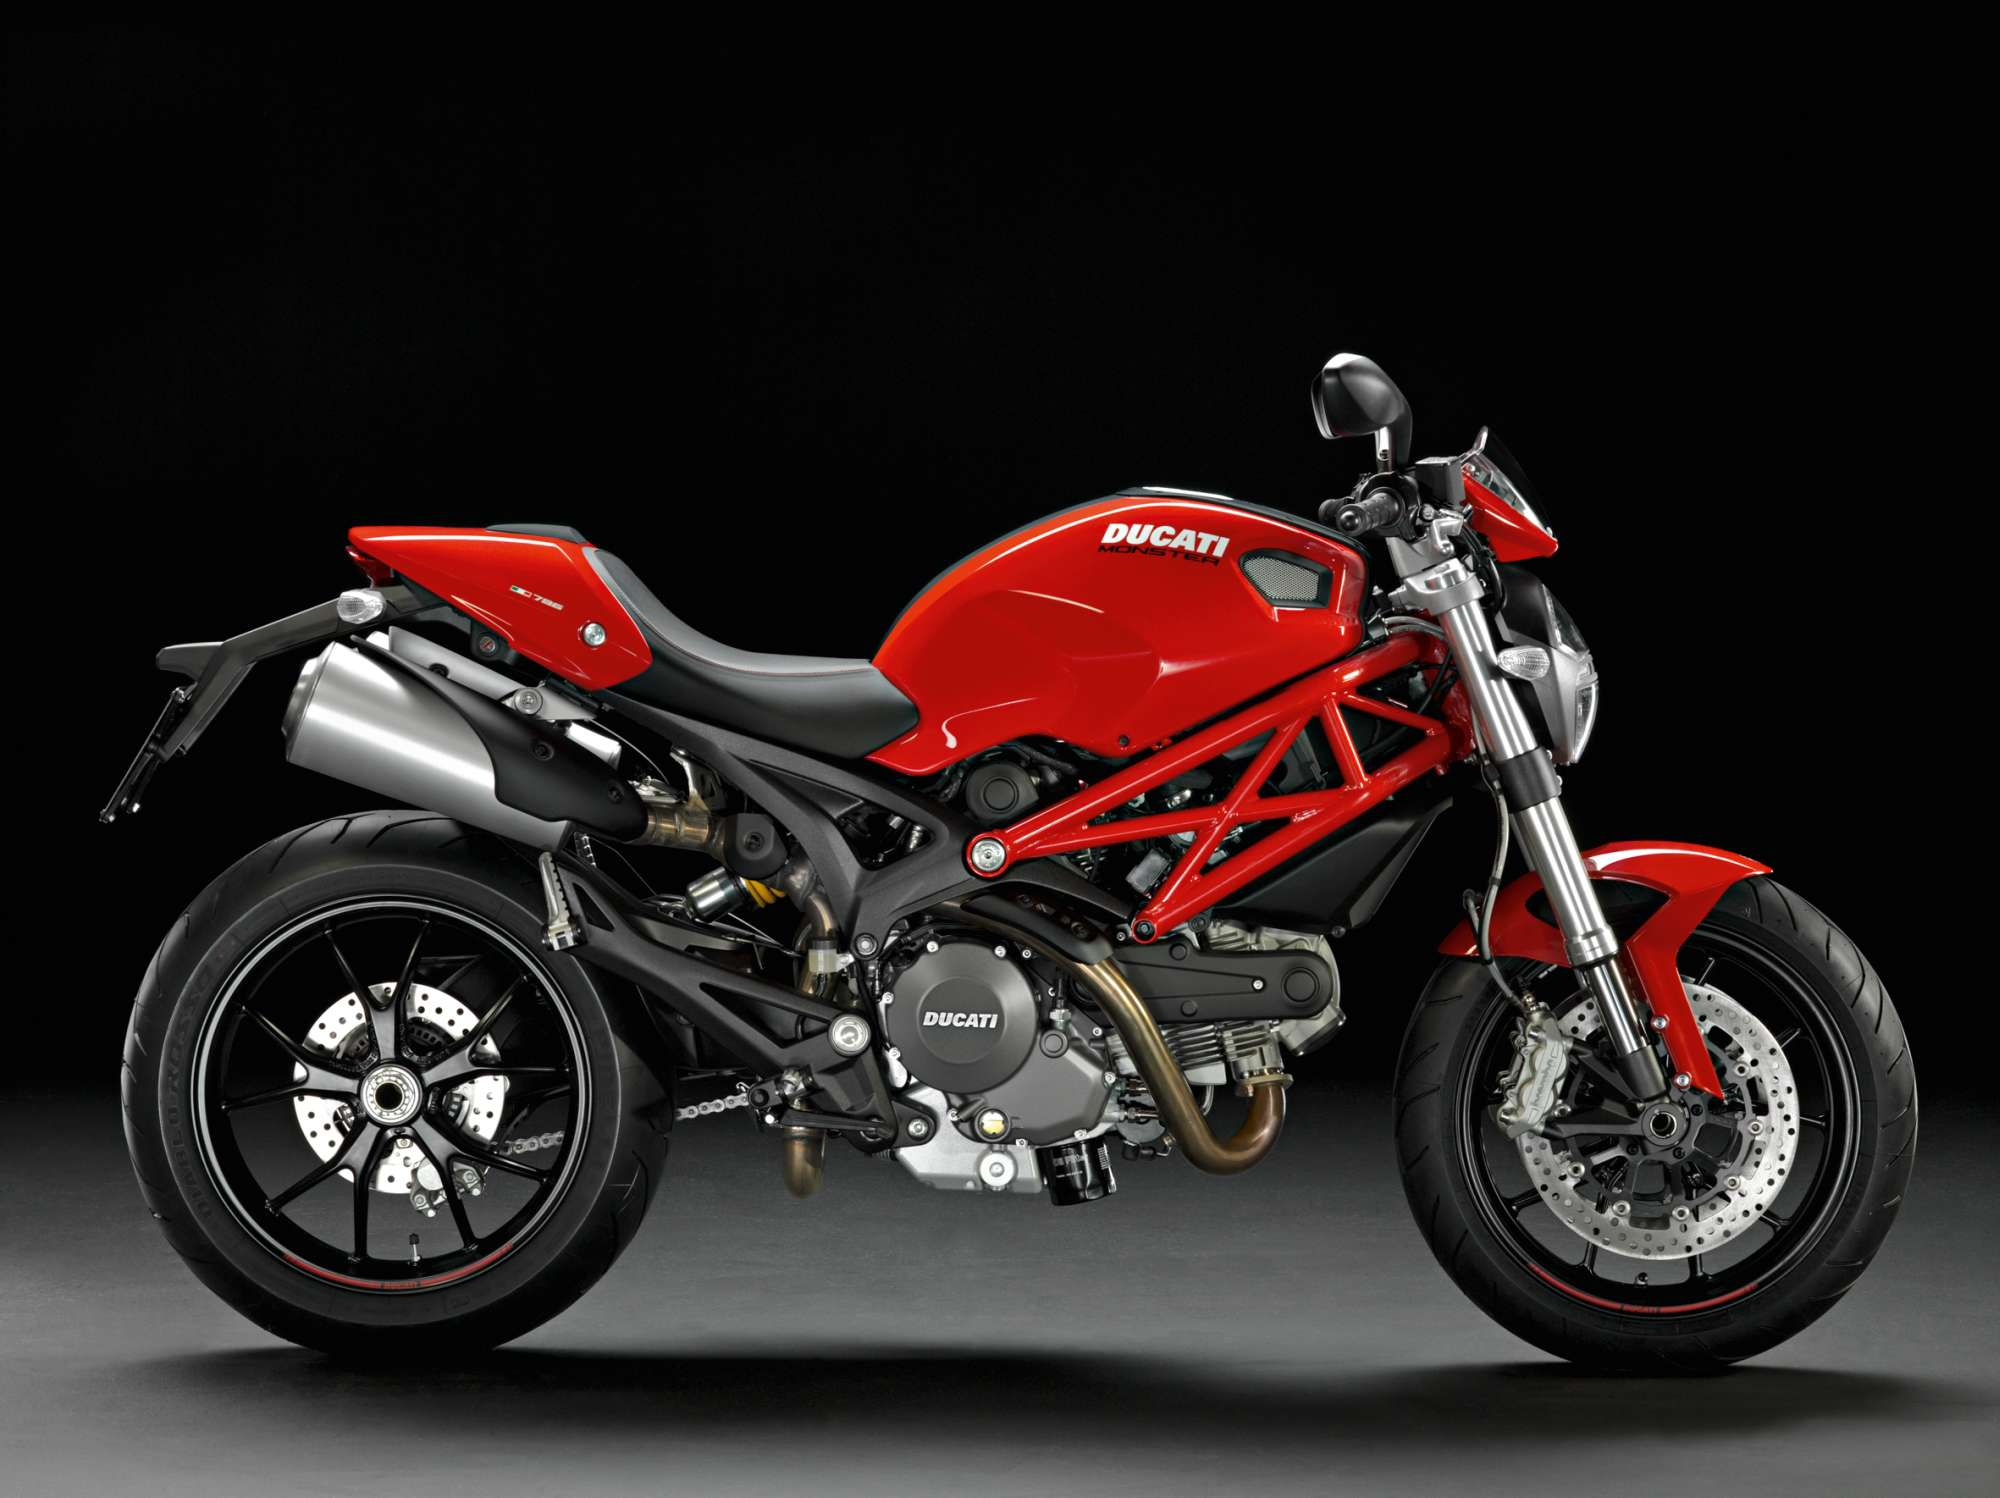 gebrauchte ducati monster 796 motorr der kaufen. Black Bedroom Furniture Sets. Home Design Ideas